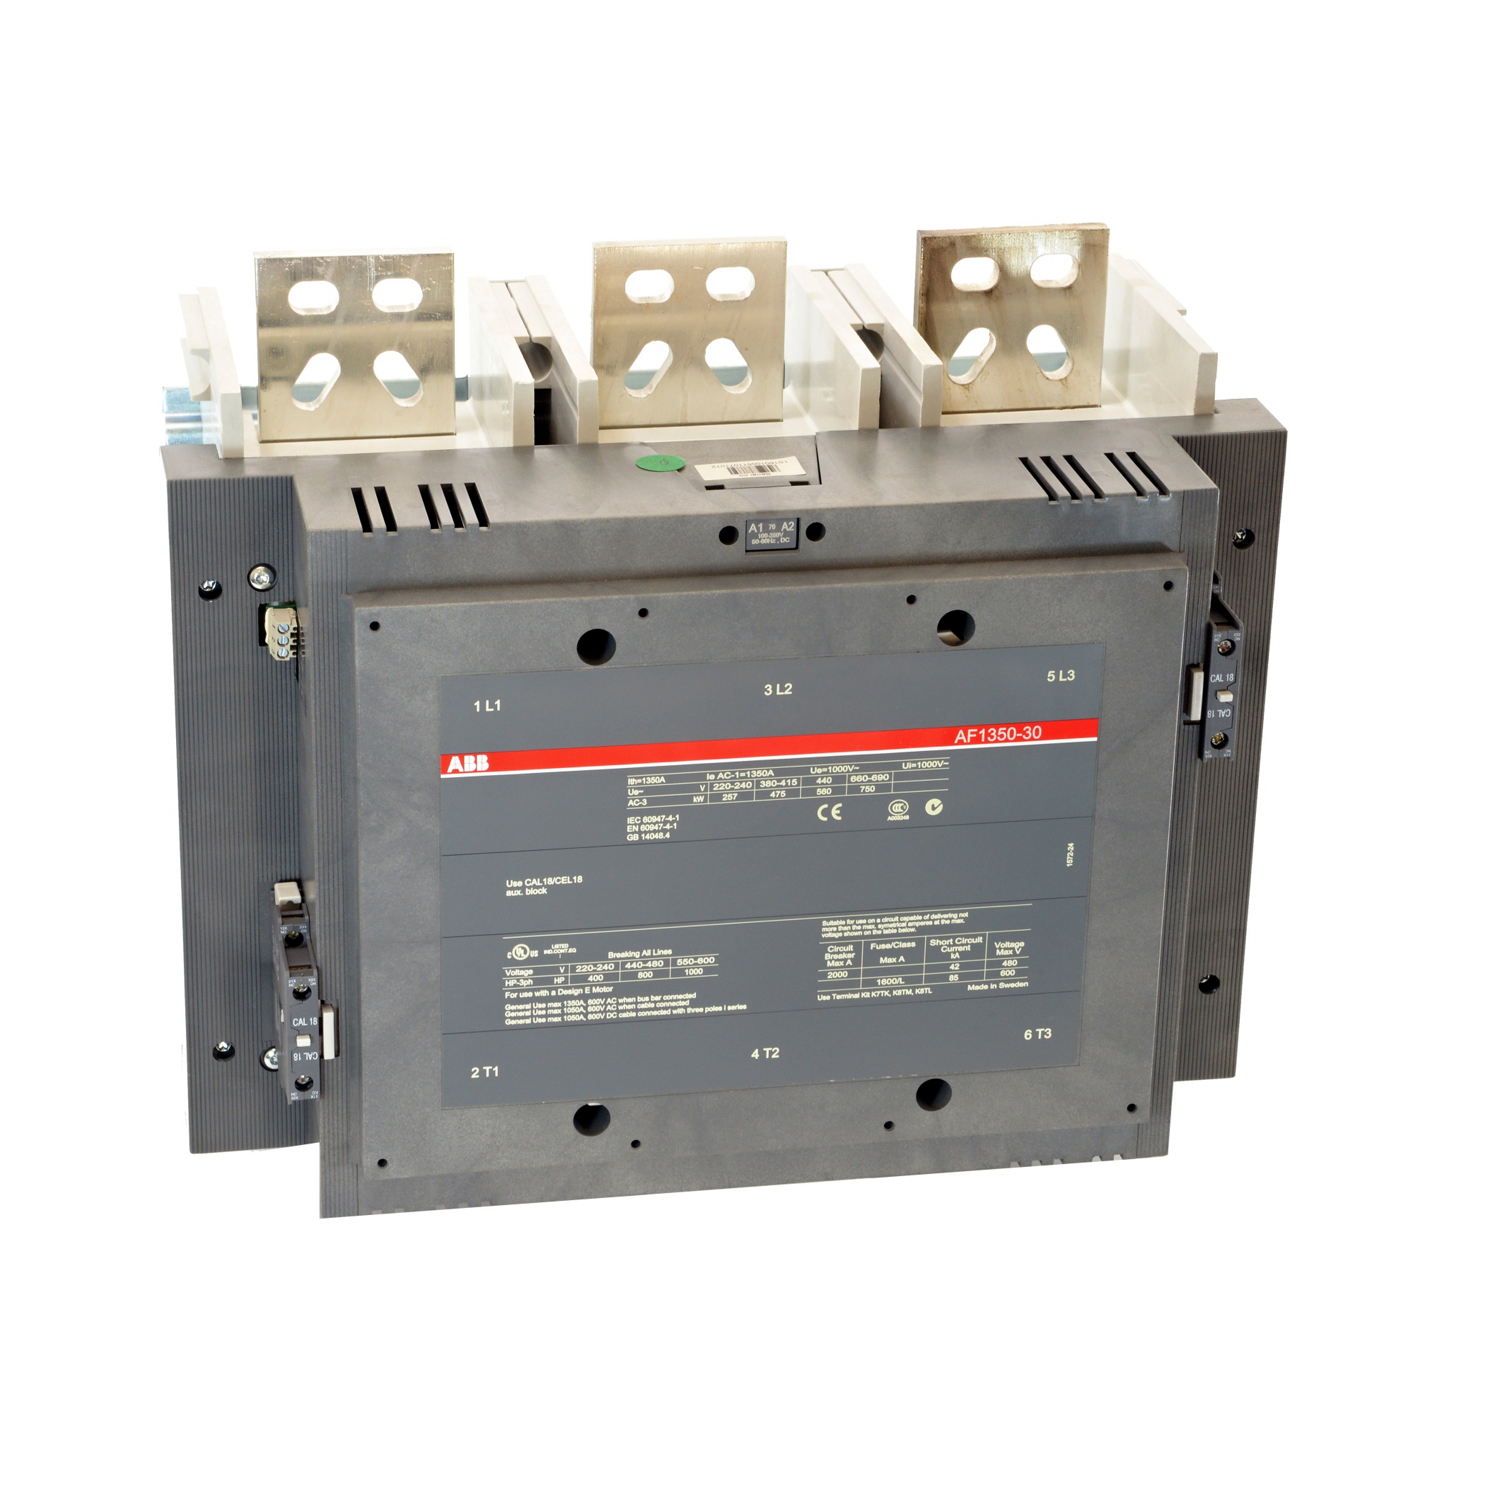 af1350302270_ab1 industrial control motor starter controls contactors standard siemens clm lighting contactor wiring diagram at gsmx.co